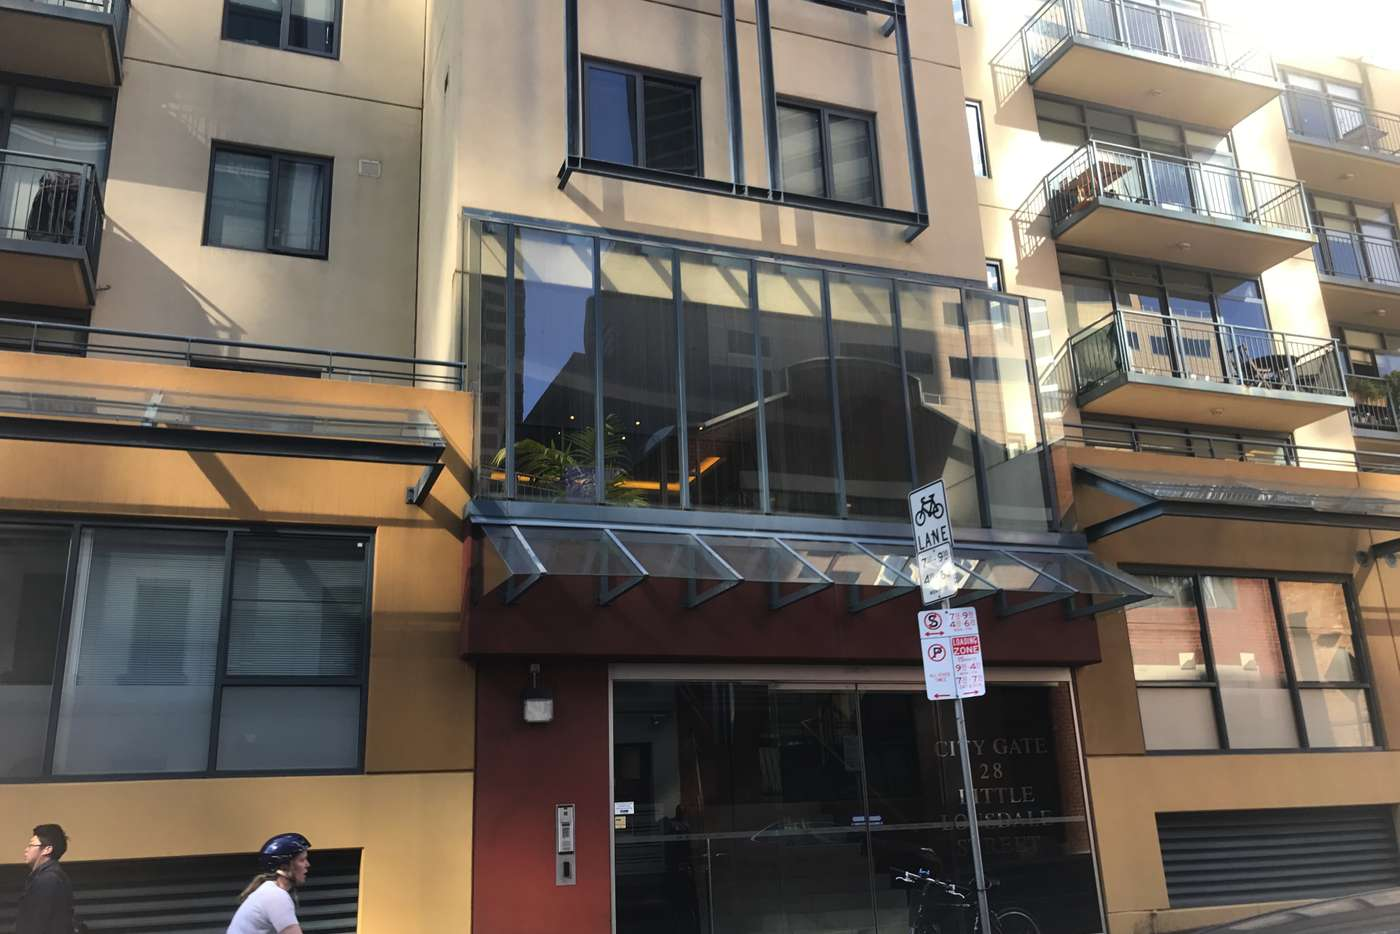 Main view of Homely apartment listing, Unit 220/28 Little Lonsdale St, Melbourne VIC 3000